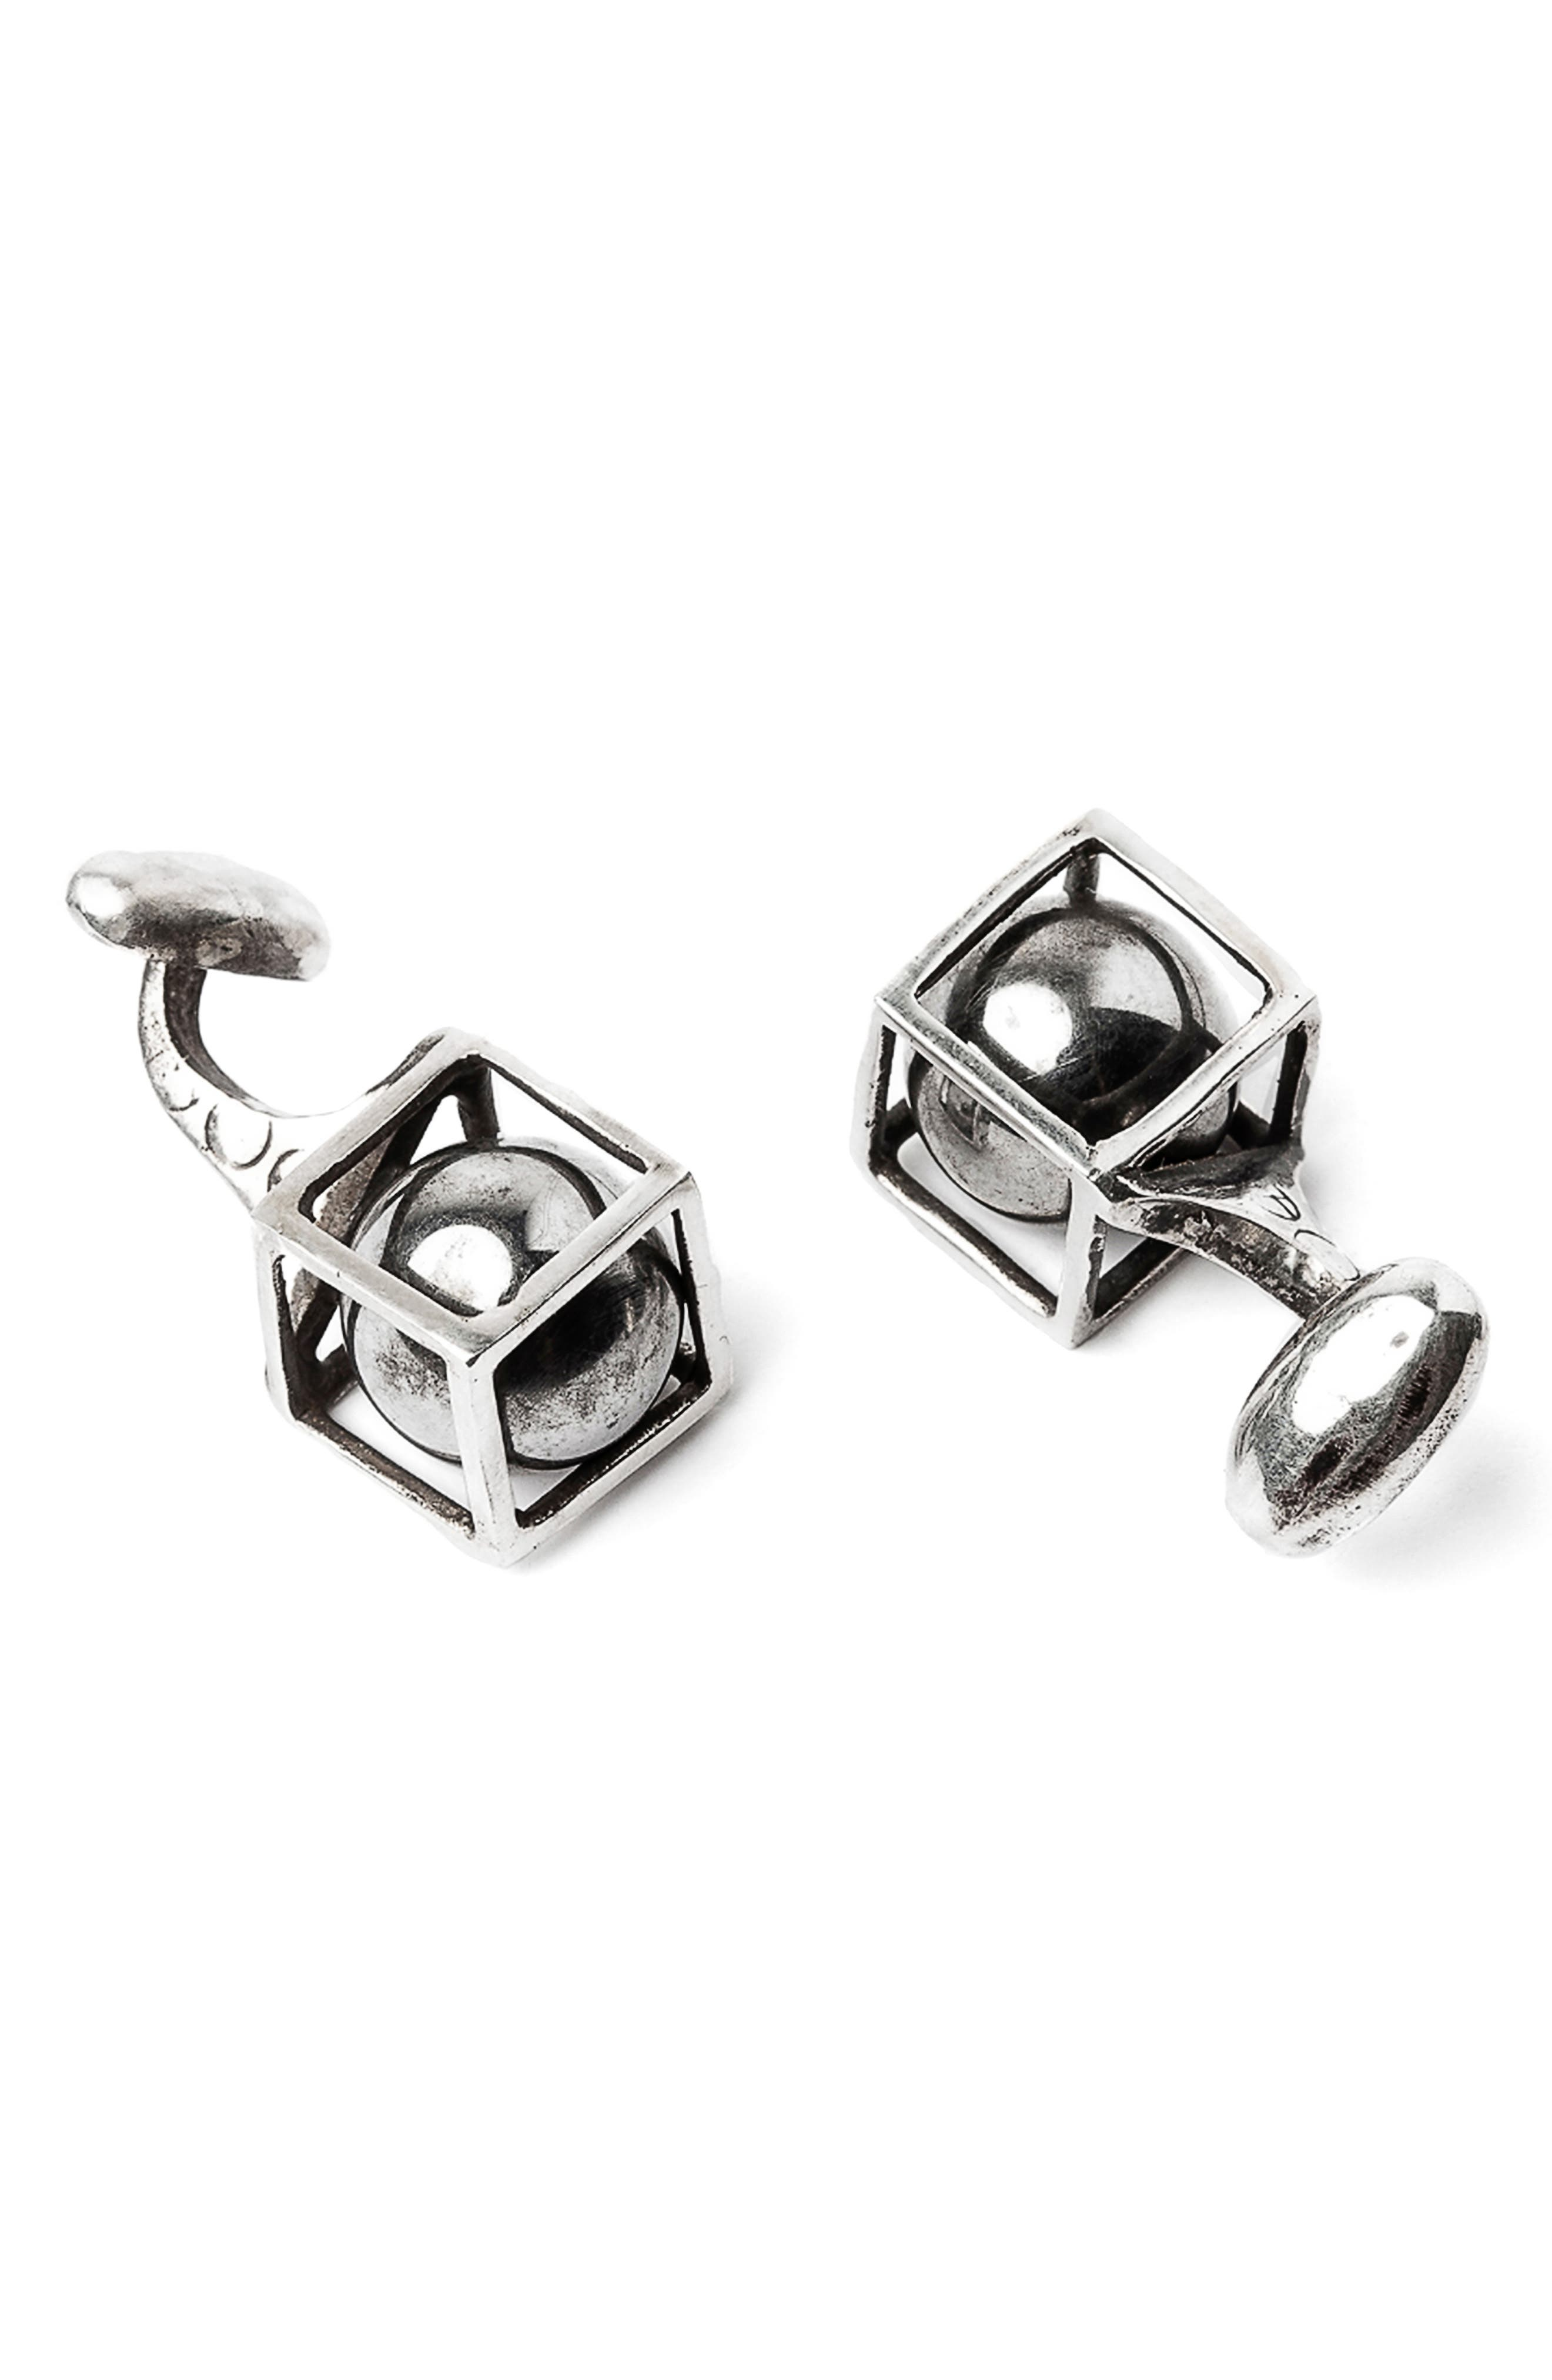 Sphere in Cube Cuff Links,                             Main thumbnail 1, color,                             040